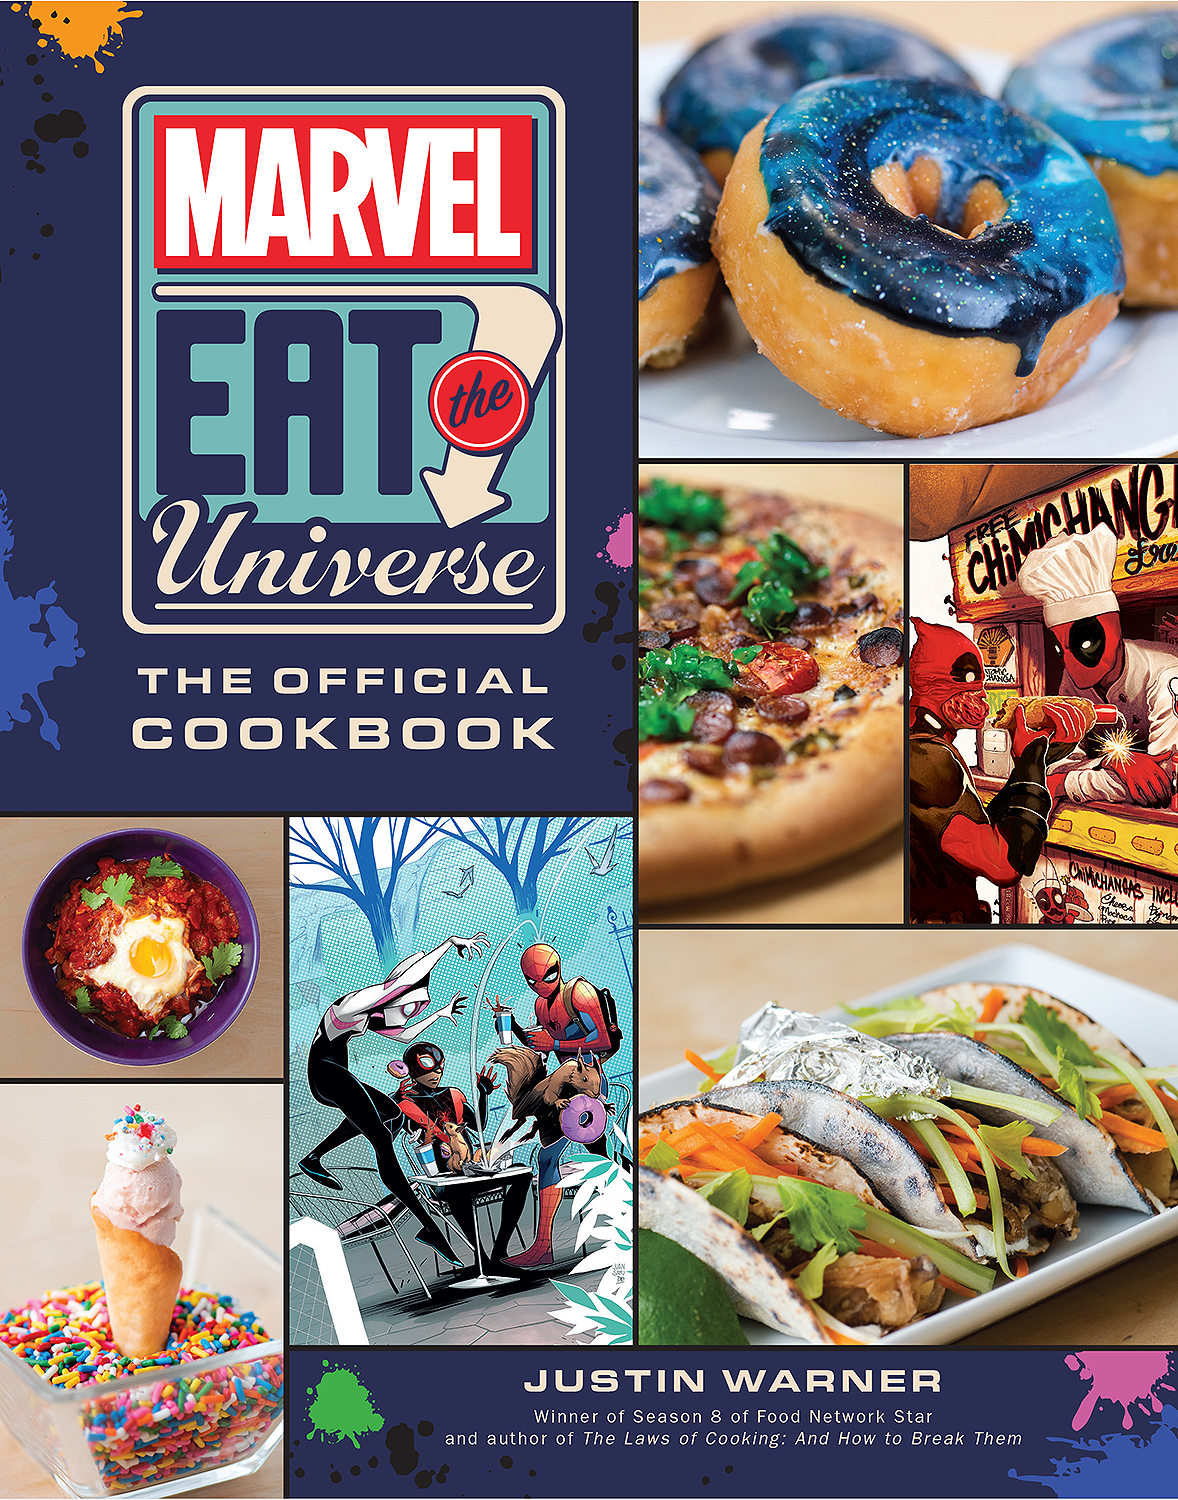 Marvel cookbook